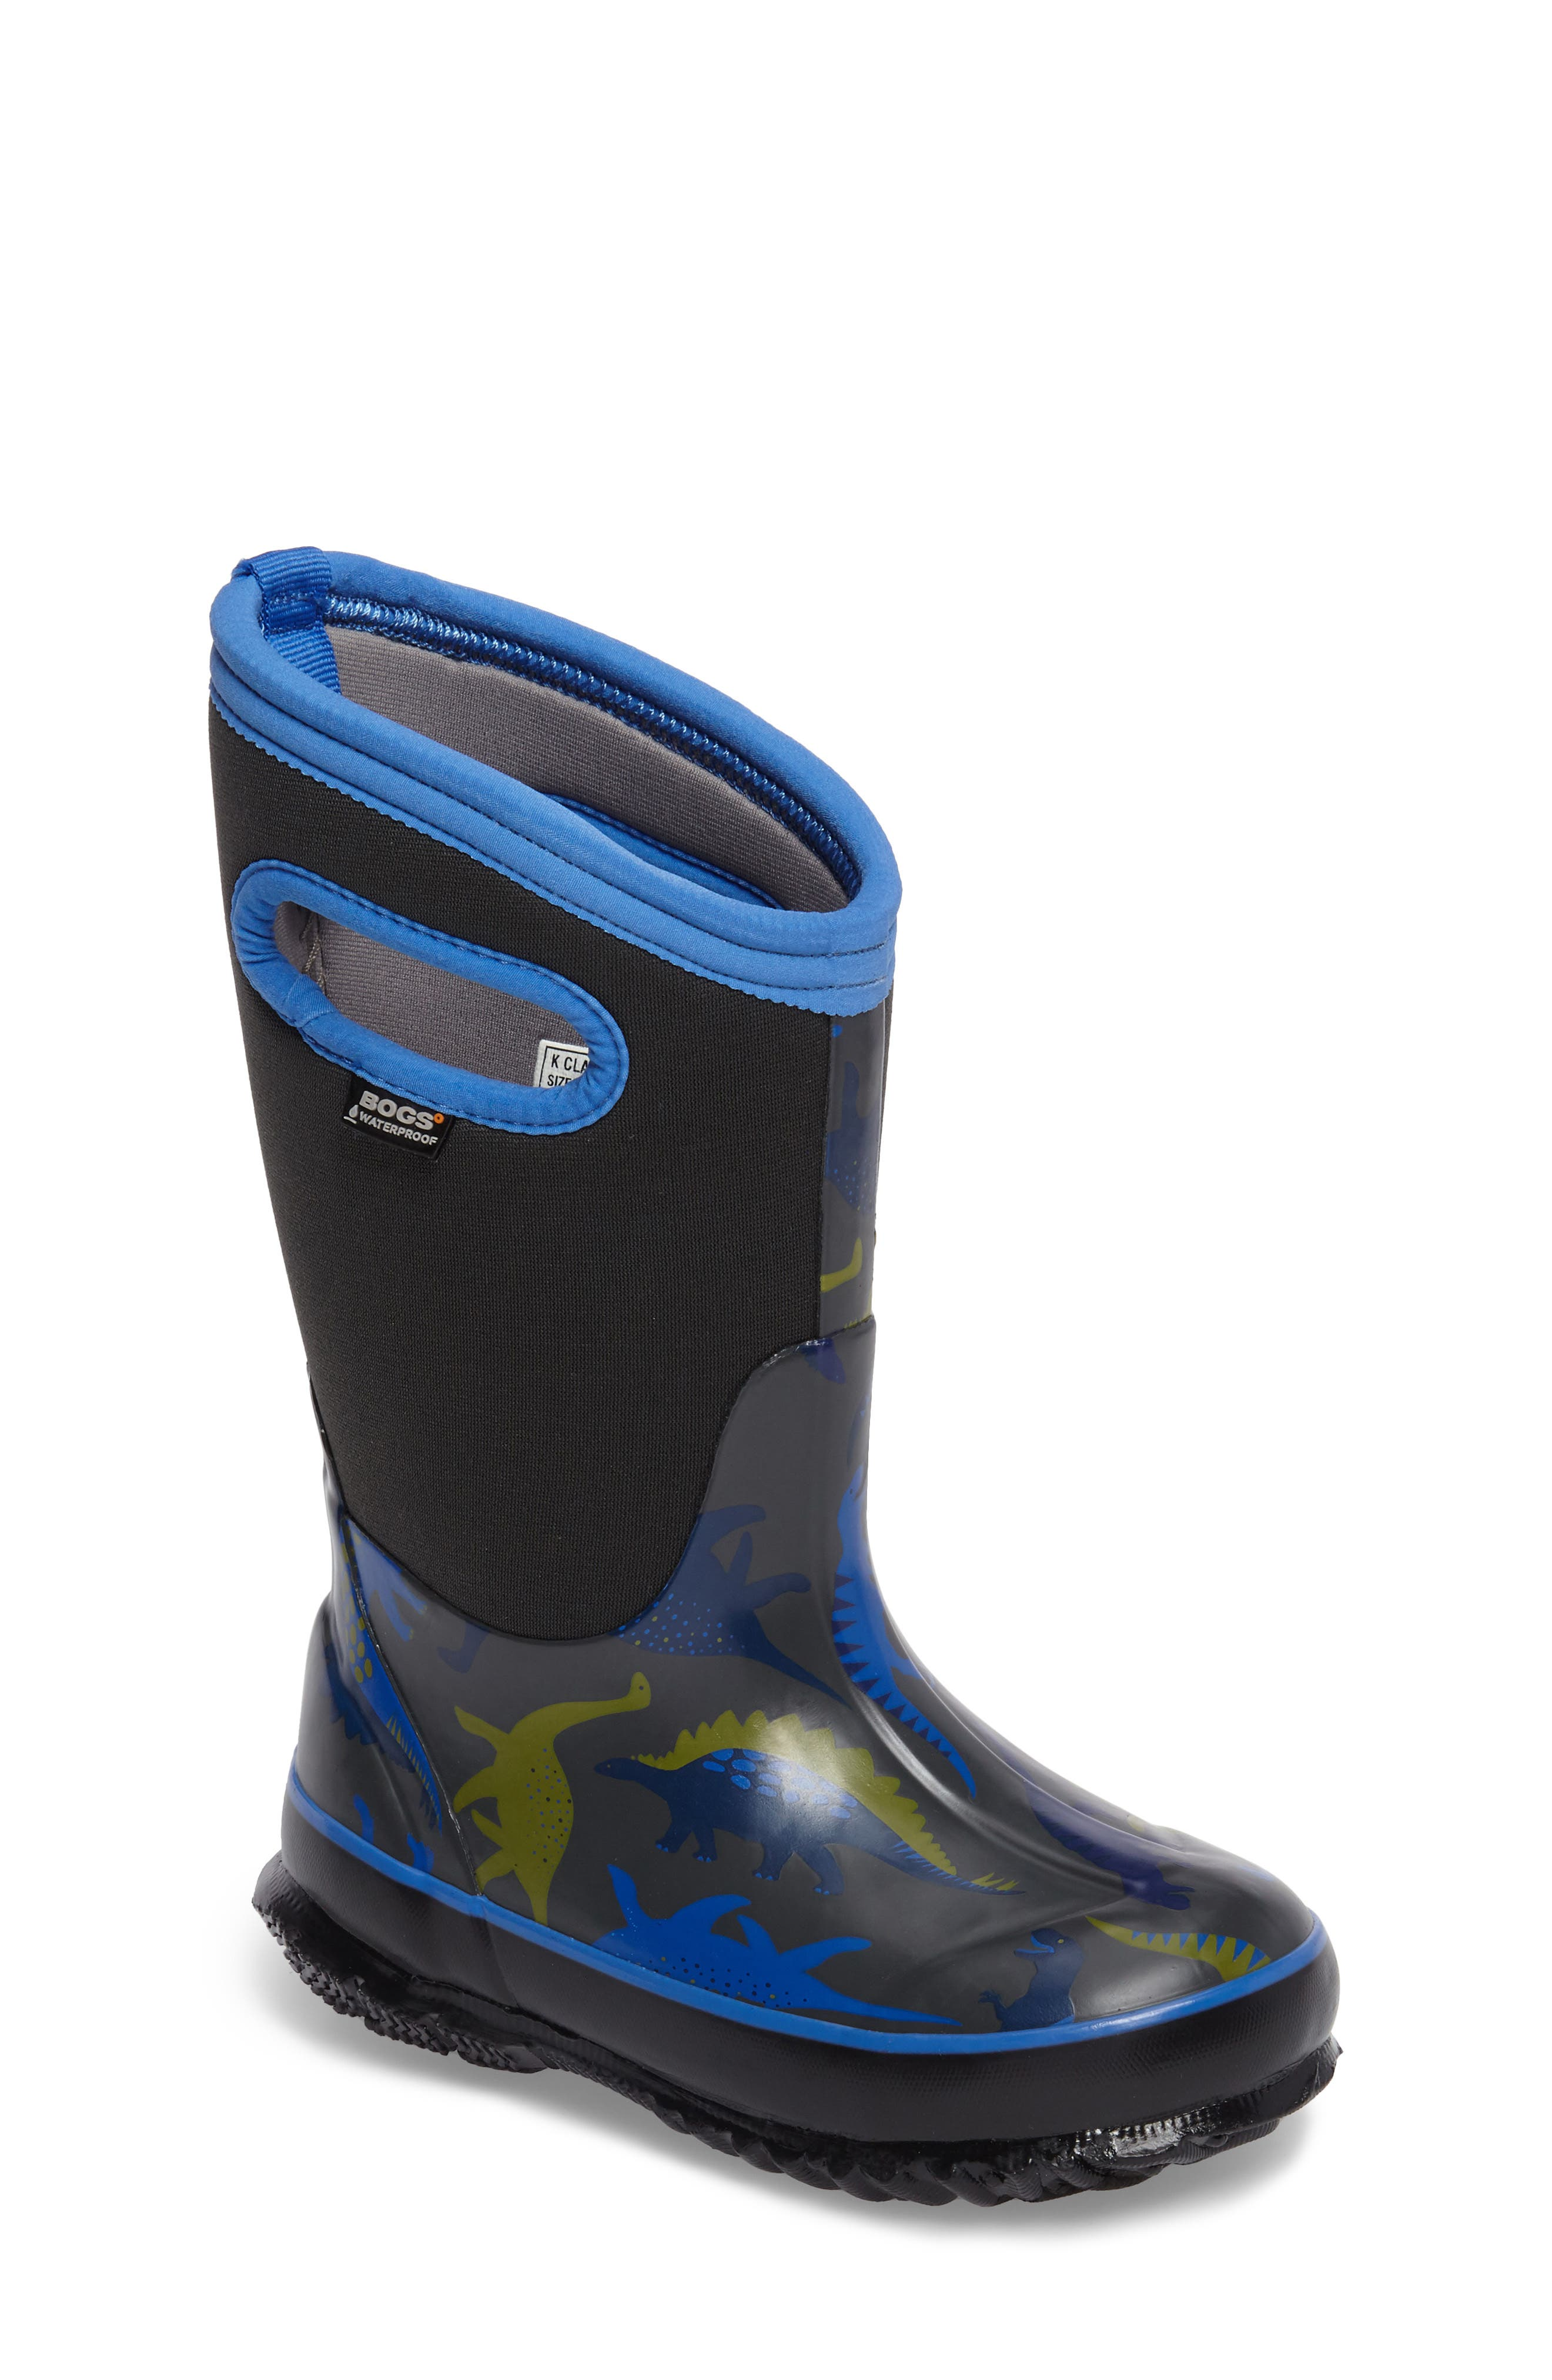 Bogs Classic Dino Insulated Waterproof Boot (Walker, Toddler, Little Kid & Big Kid)